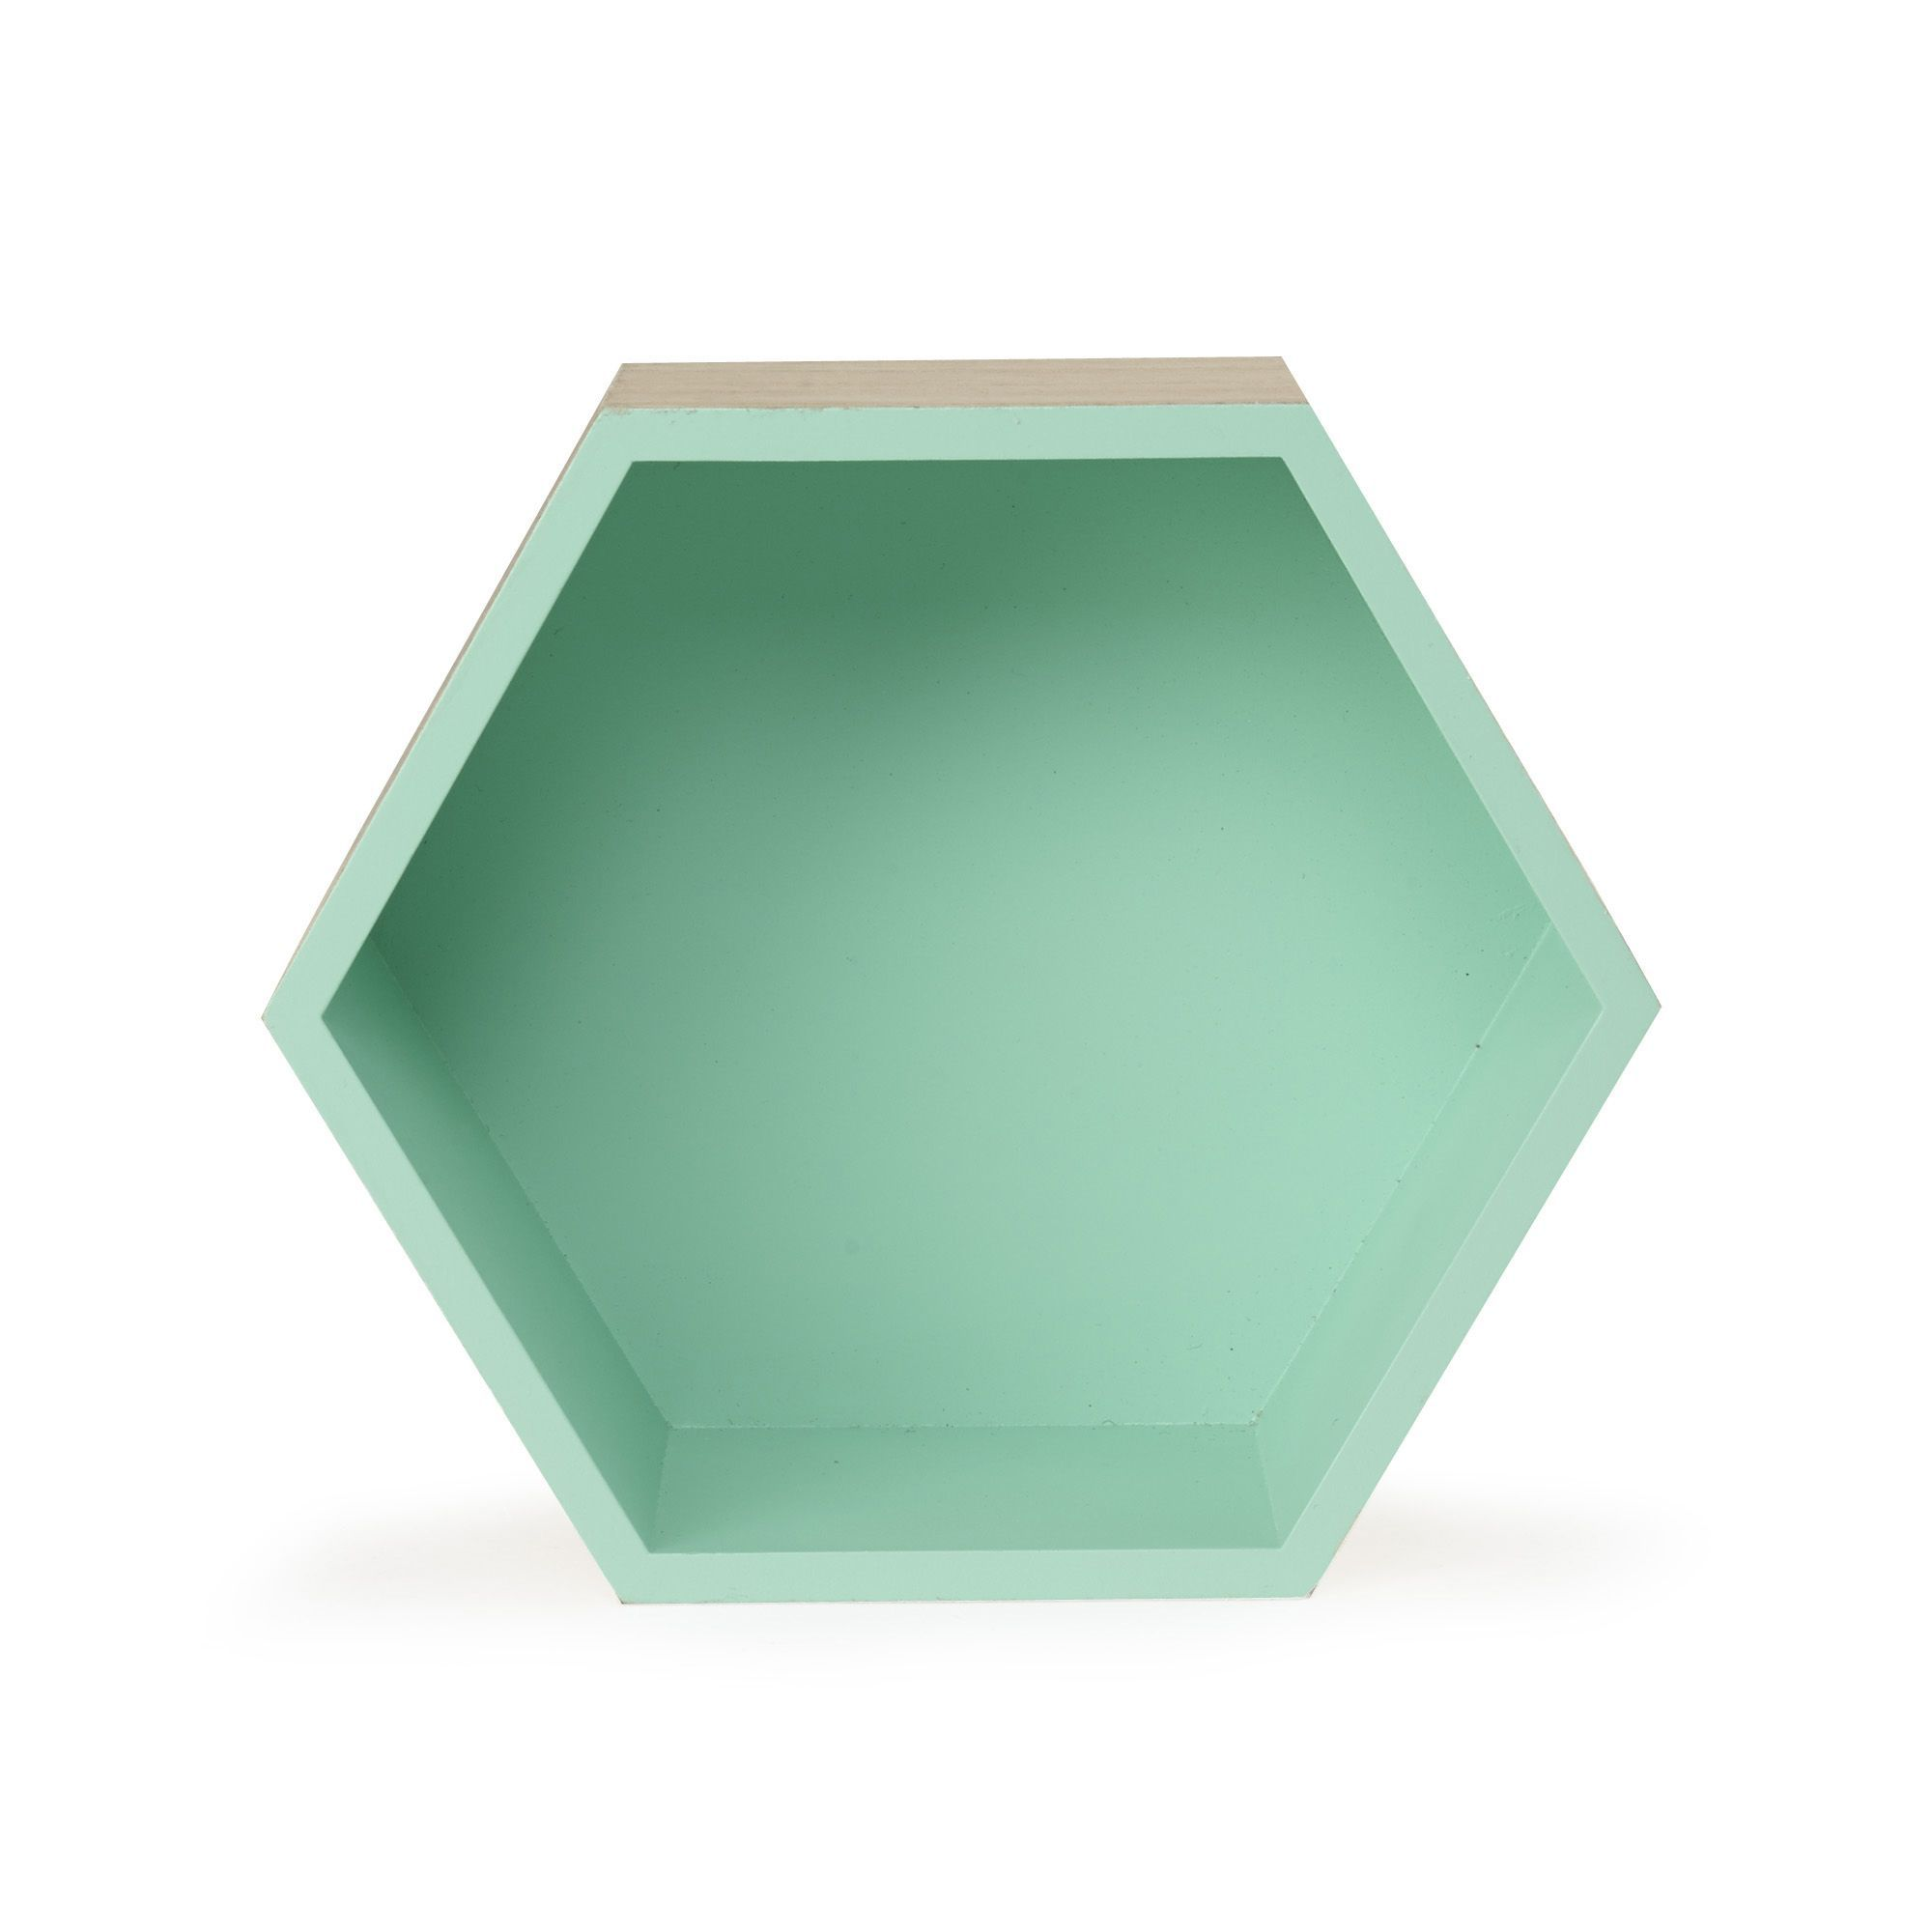 Etag re hexagonale grand mod le vert rush tag res - Modele d etagere murale ...